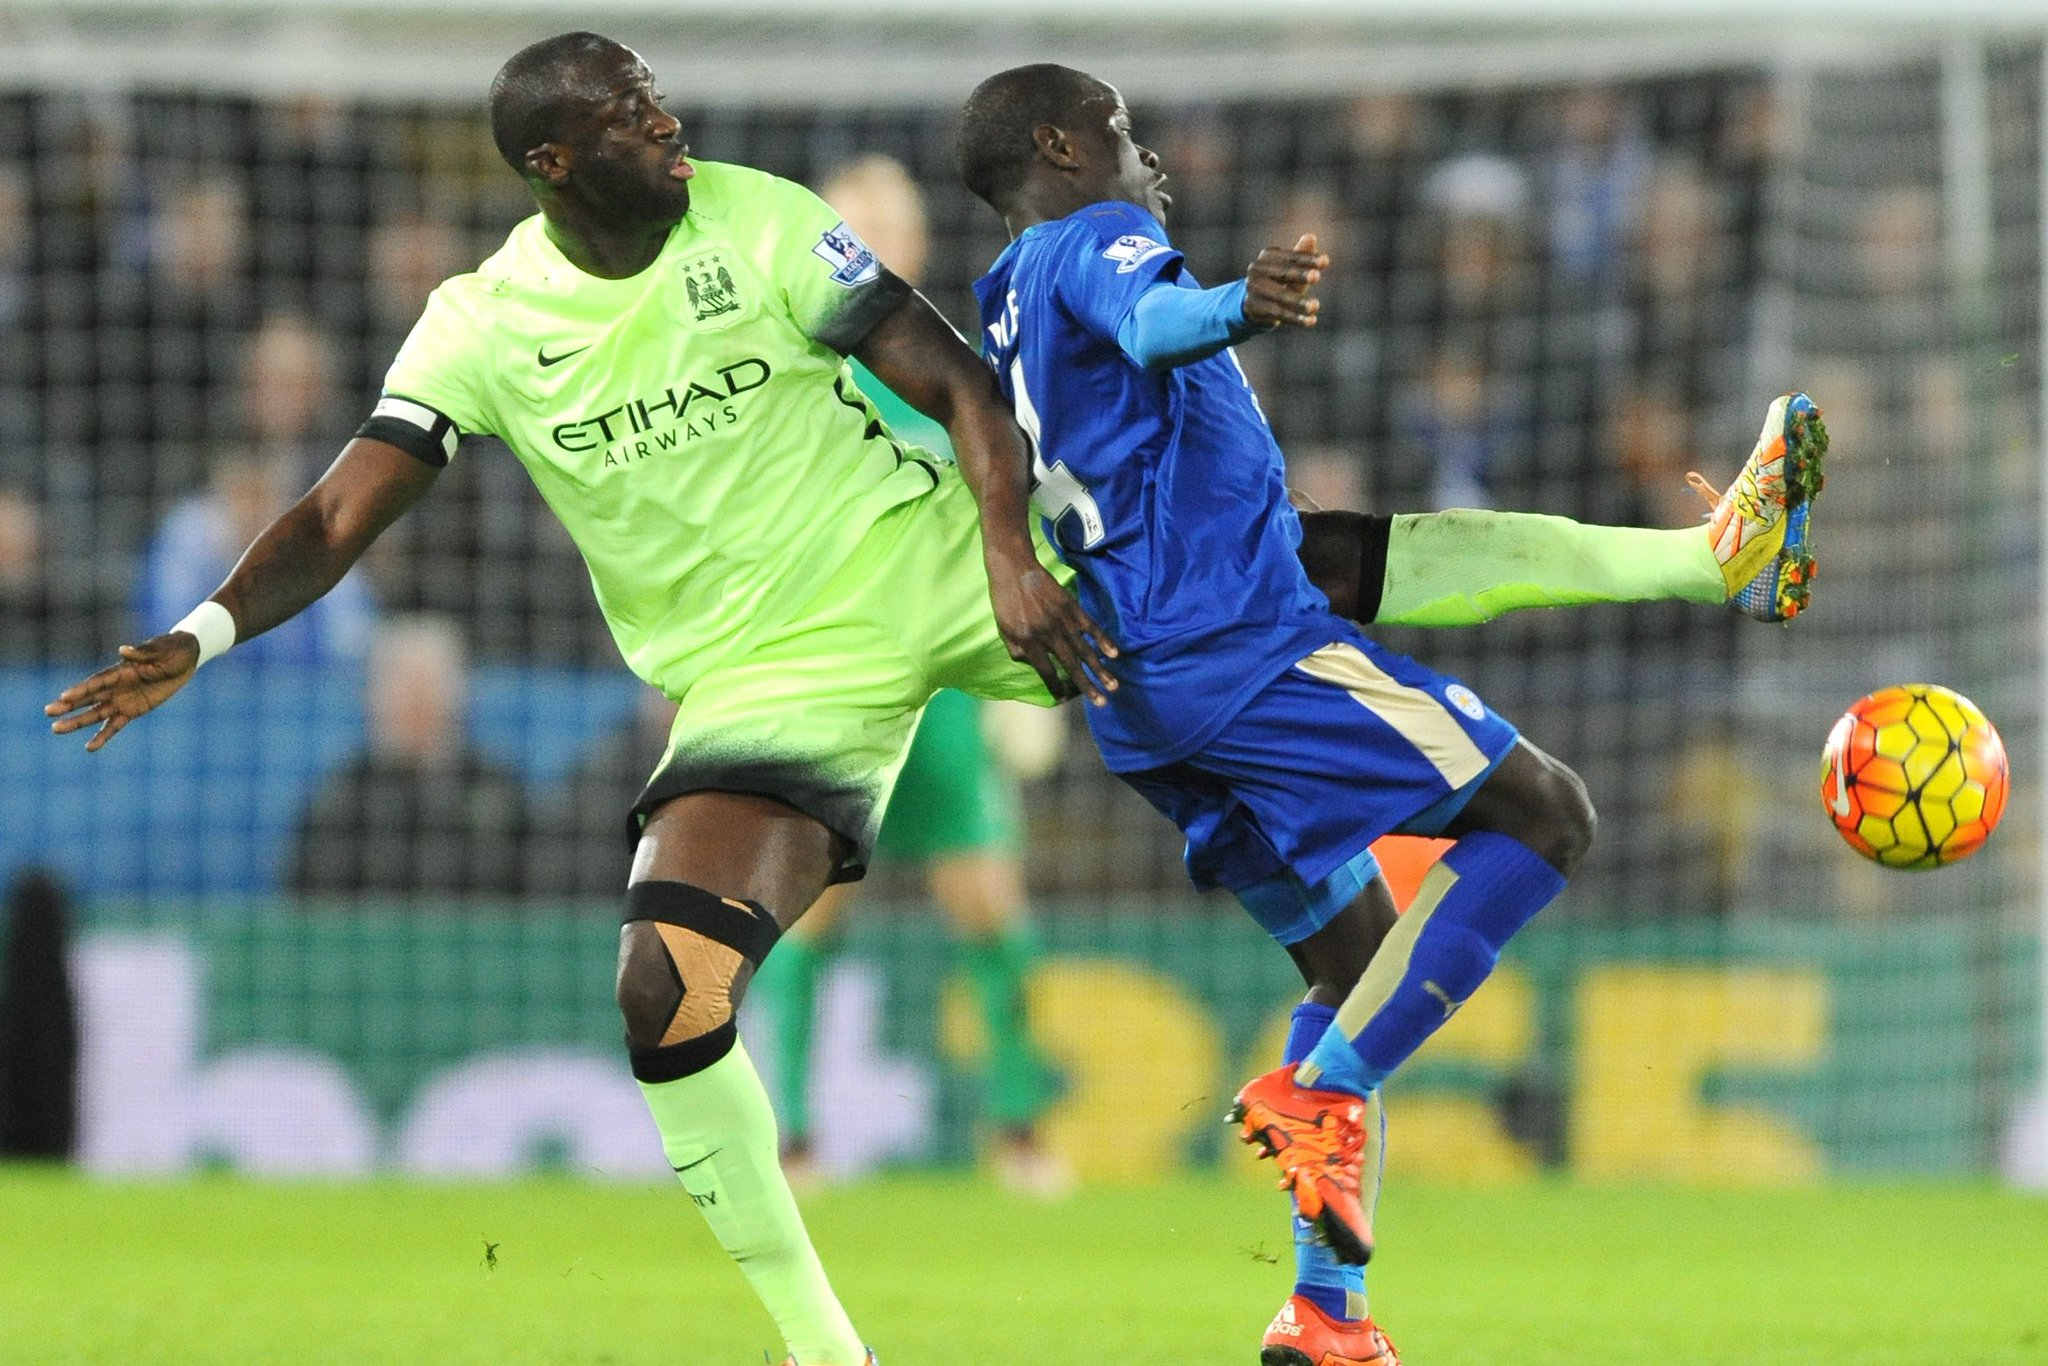 RT @MCFC: Worldwide broadcast listings for #cityvlcfc.  Where will you be watching?  TV guide: https://t.co/aESzEwBYx8 #mcfc https://t.co/Q…